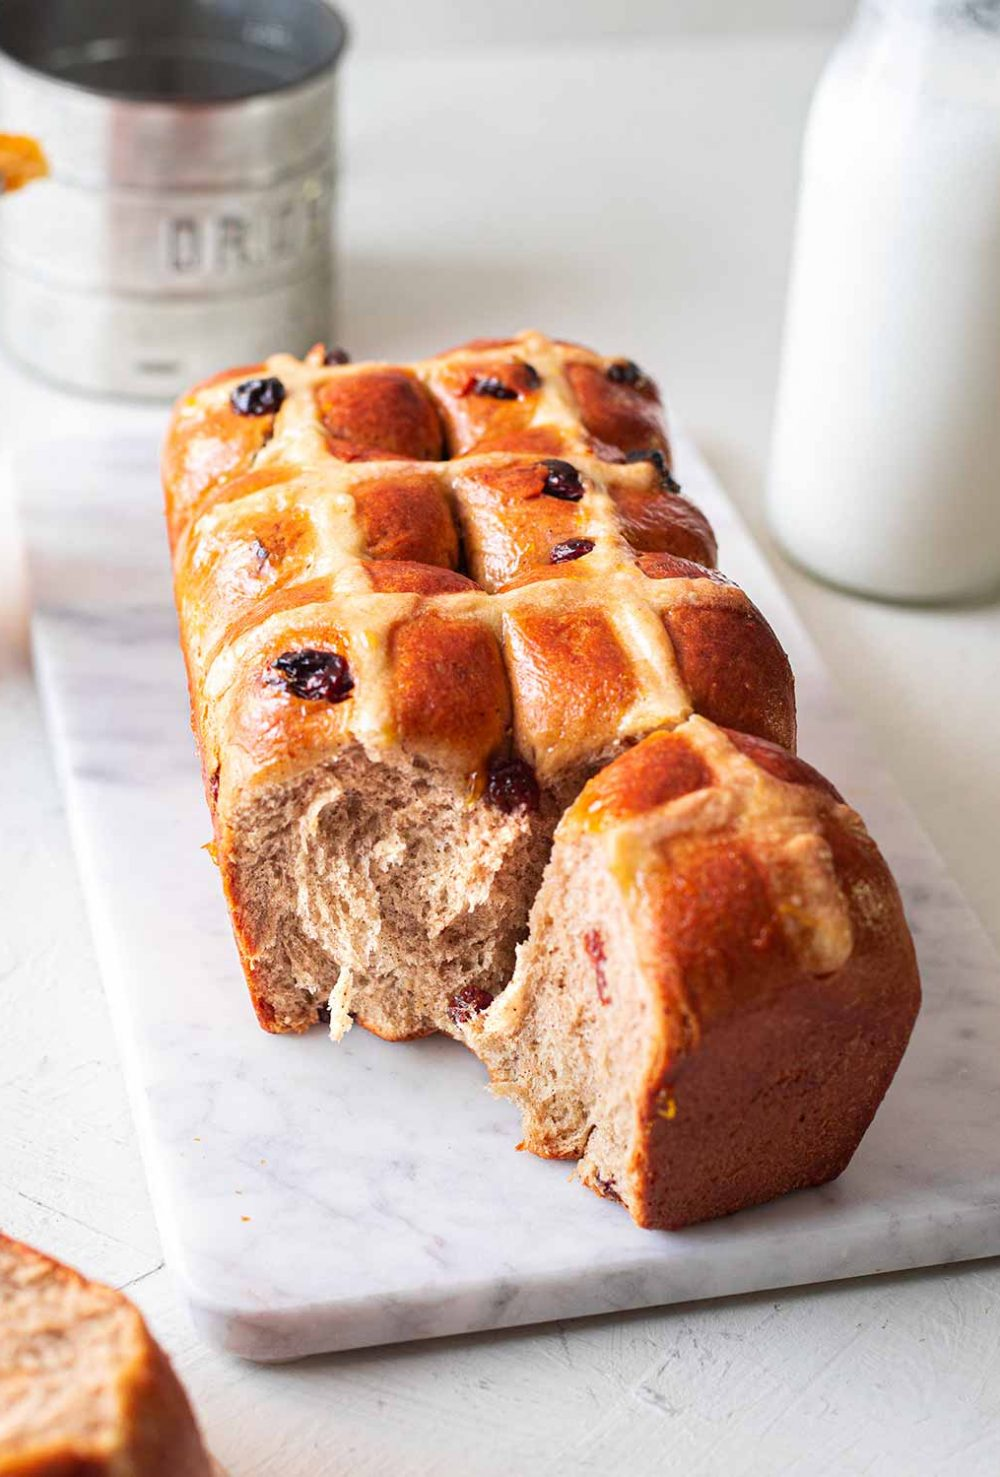 Vegan brioche hot cross buns loaf on a marble serving platter. One hot cross bun has been taken away revealing the feathery and buttery texture.